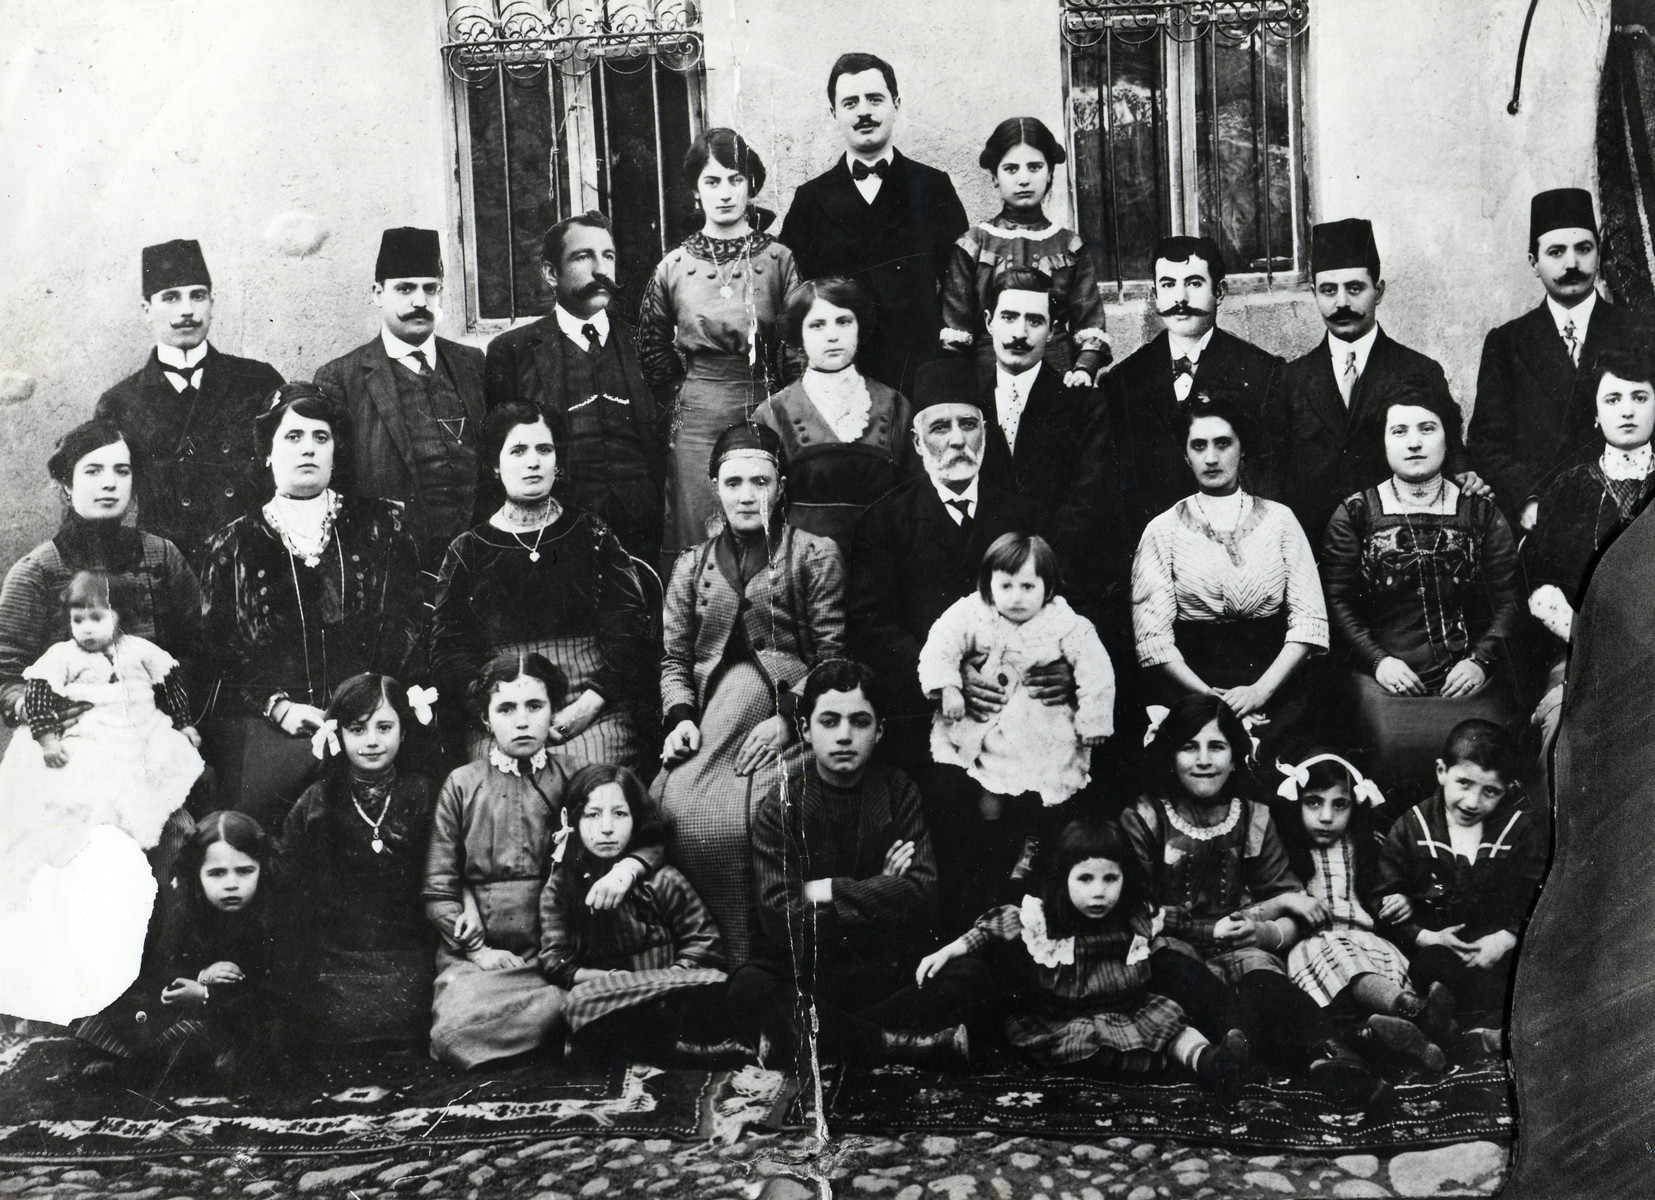 A large extended Macedonian Jewish family.  Pictured is the family of Salamon Kolonomos, who immigrated to Monastir from Greece with his brothers  Kalef and Mentesh.  Kalef and Mentesh emigrated to France before the start of WWI.